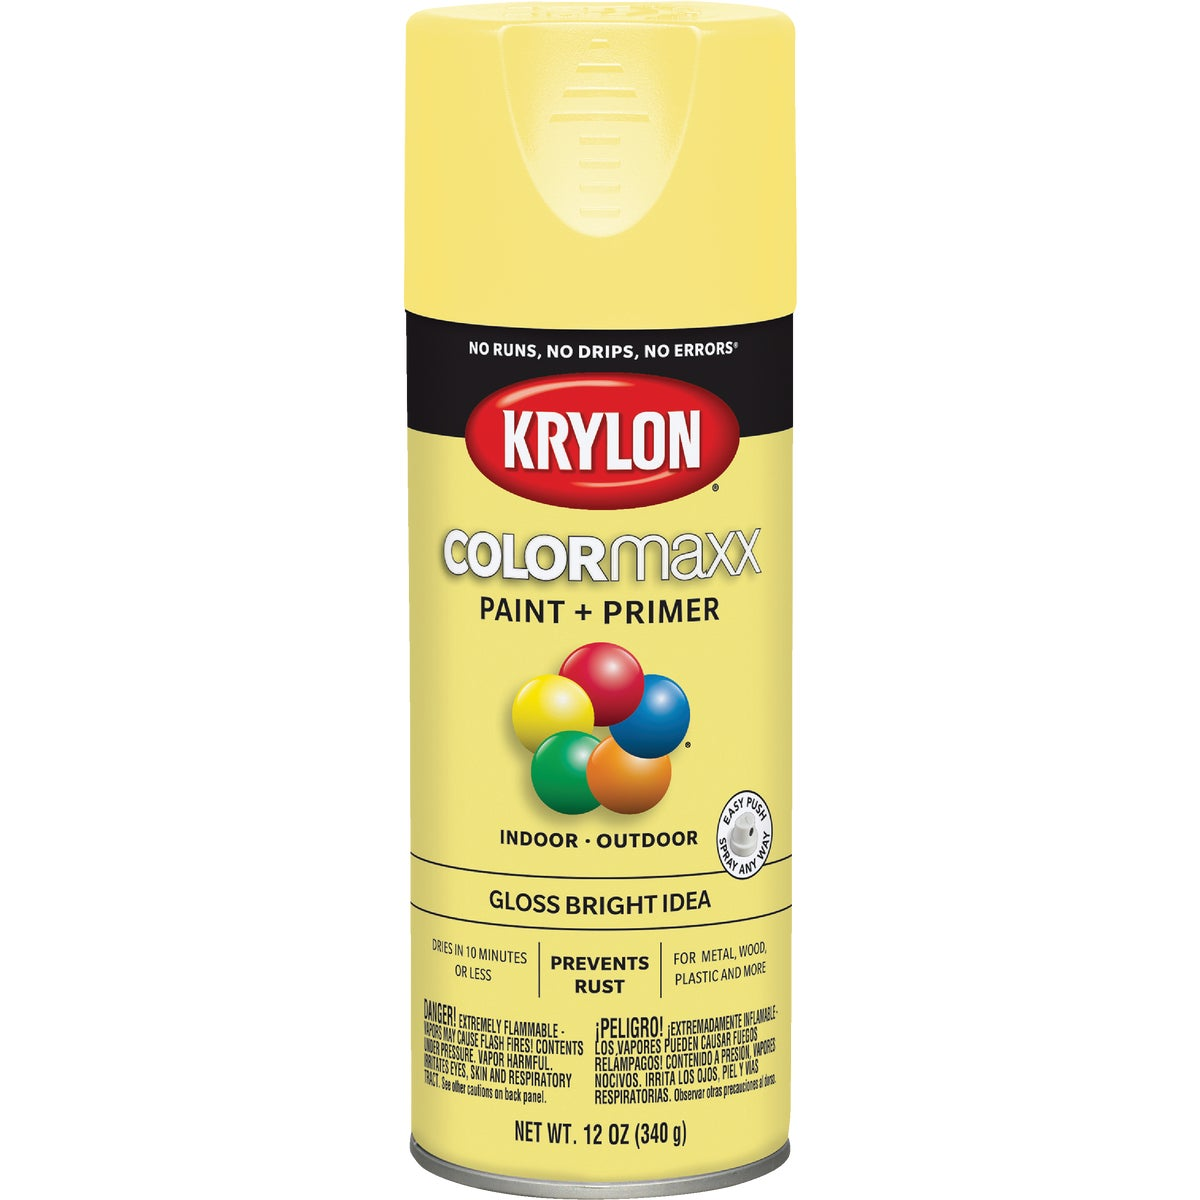 GLS BRT IDEA SPRAY PAINT - 53538 by Krylon/consumer Div